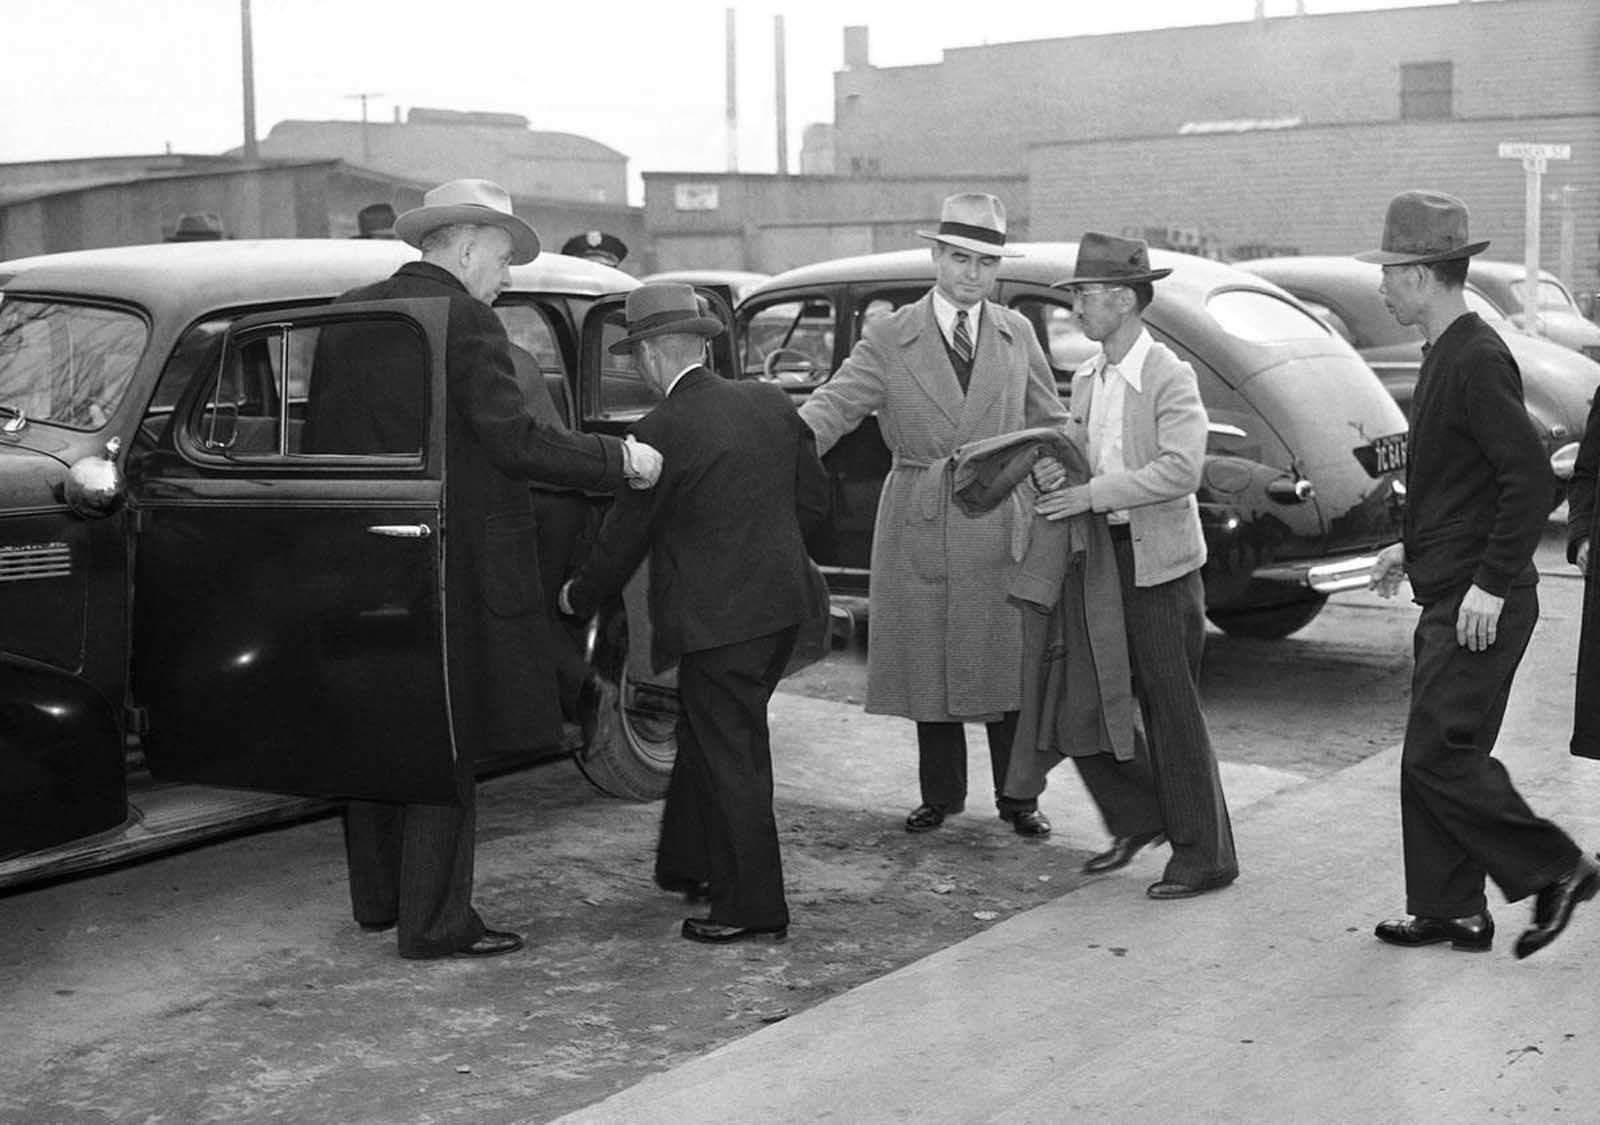 Two plainclothes men, left, watch as Japanese aliens are removed from their homes on Terminal Island, a vital Naval and Shipbuilding center in Los Angeles, California, on February 3, 1942. Some 400 male Japanese aliens -- Terminal Island residents -- were rounded up early on February 2 by 180 federal, city and county officers.